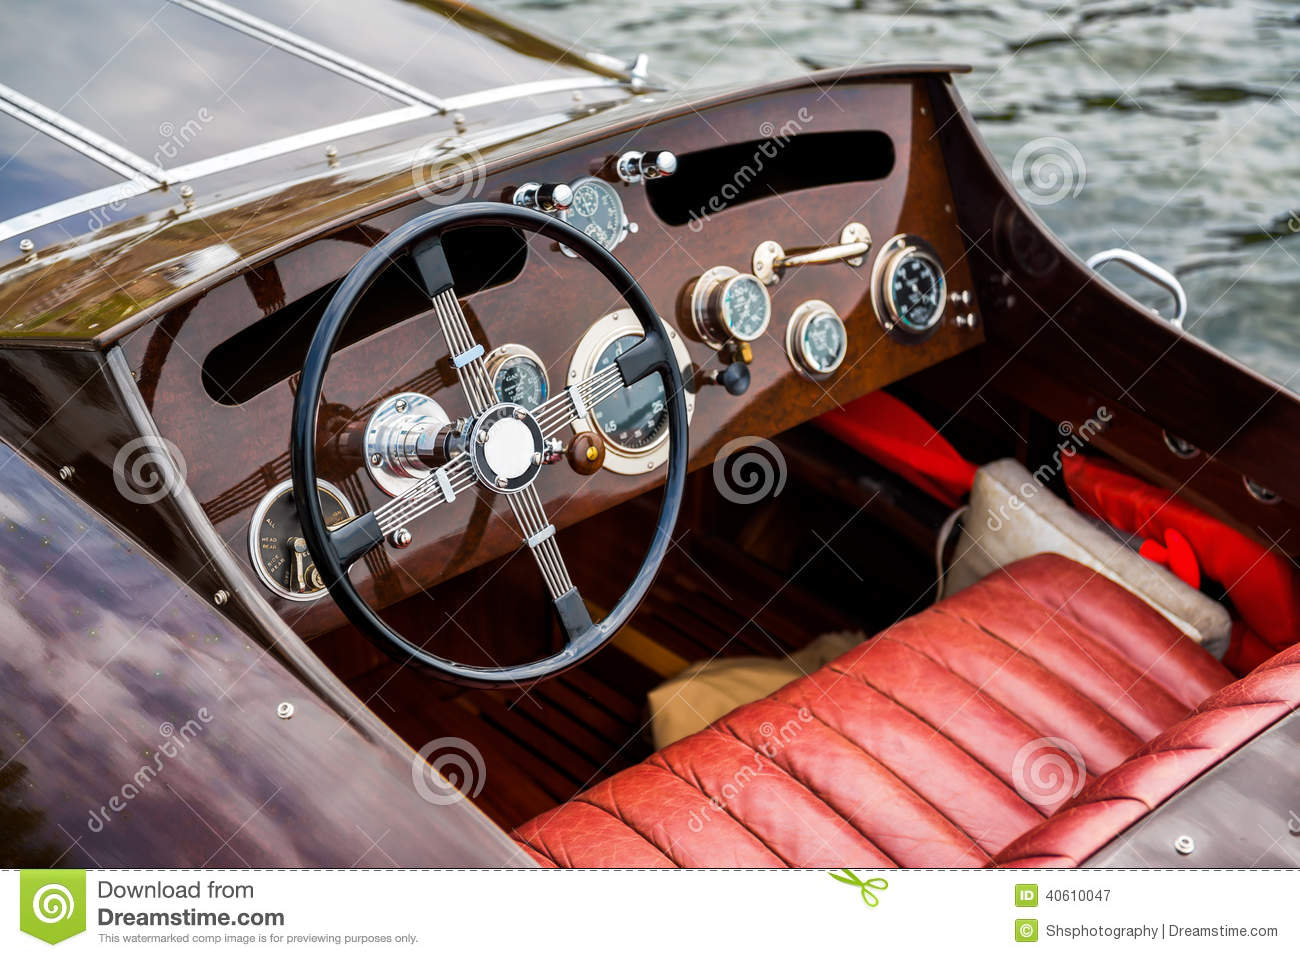 ... of the steering wheel and dashboard of an antique wooden motor boat